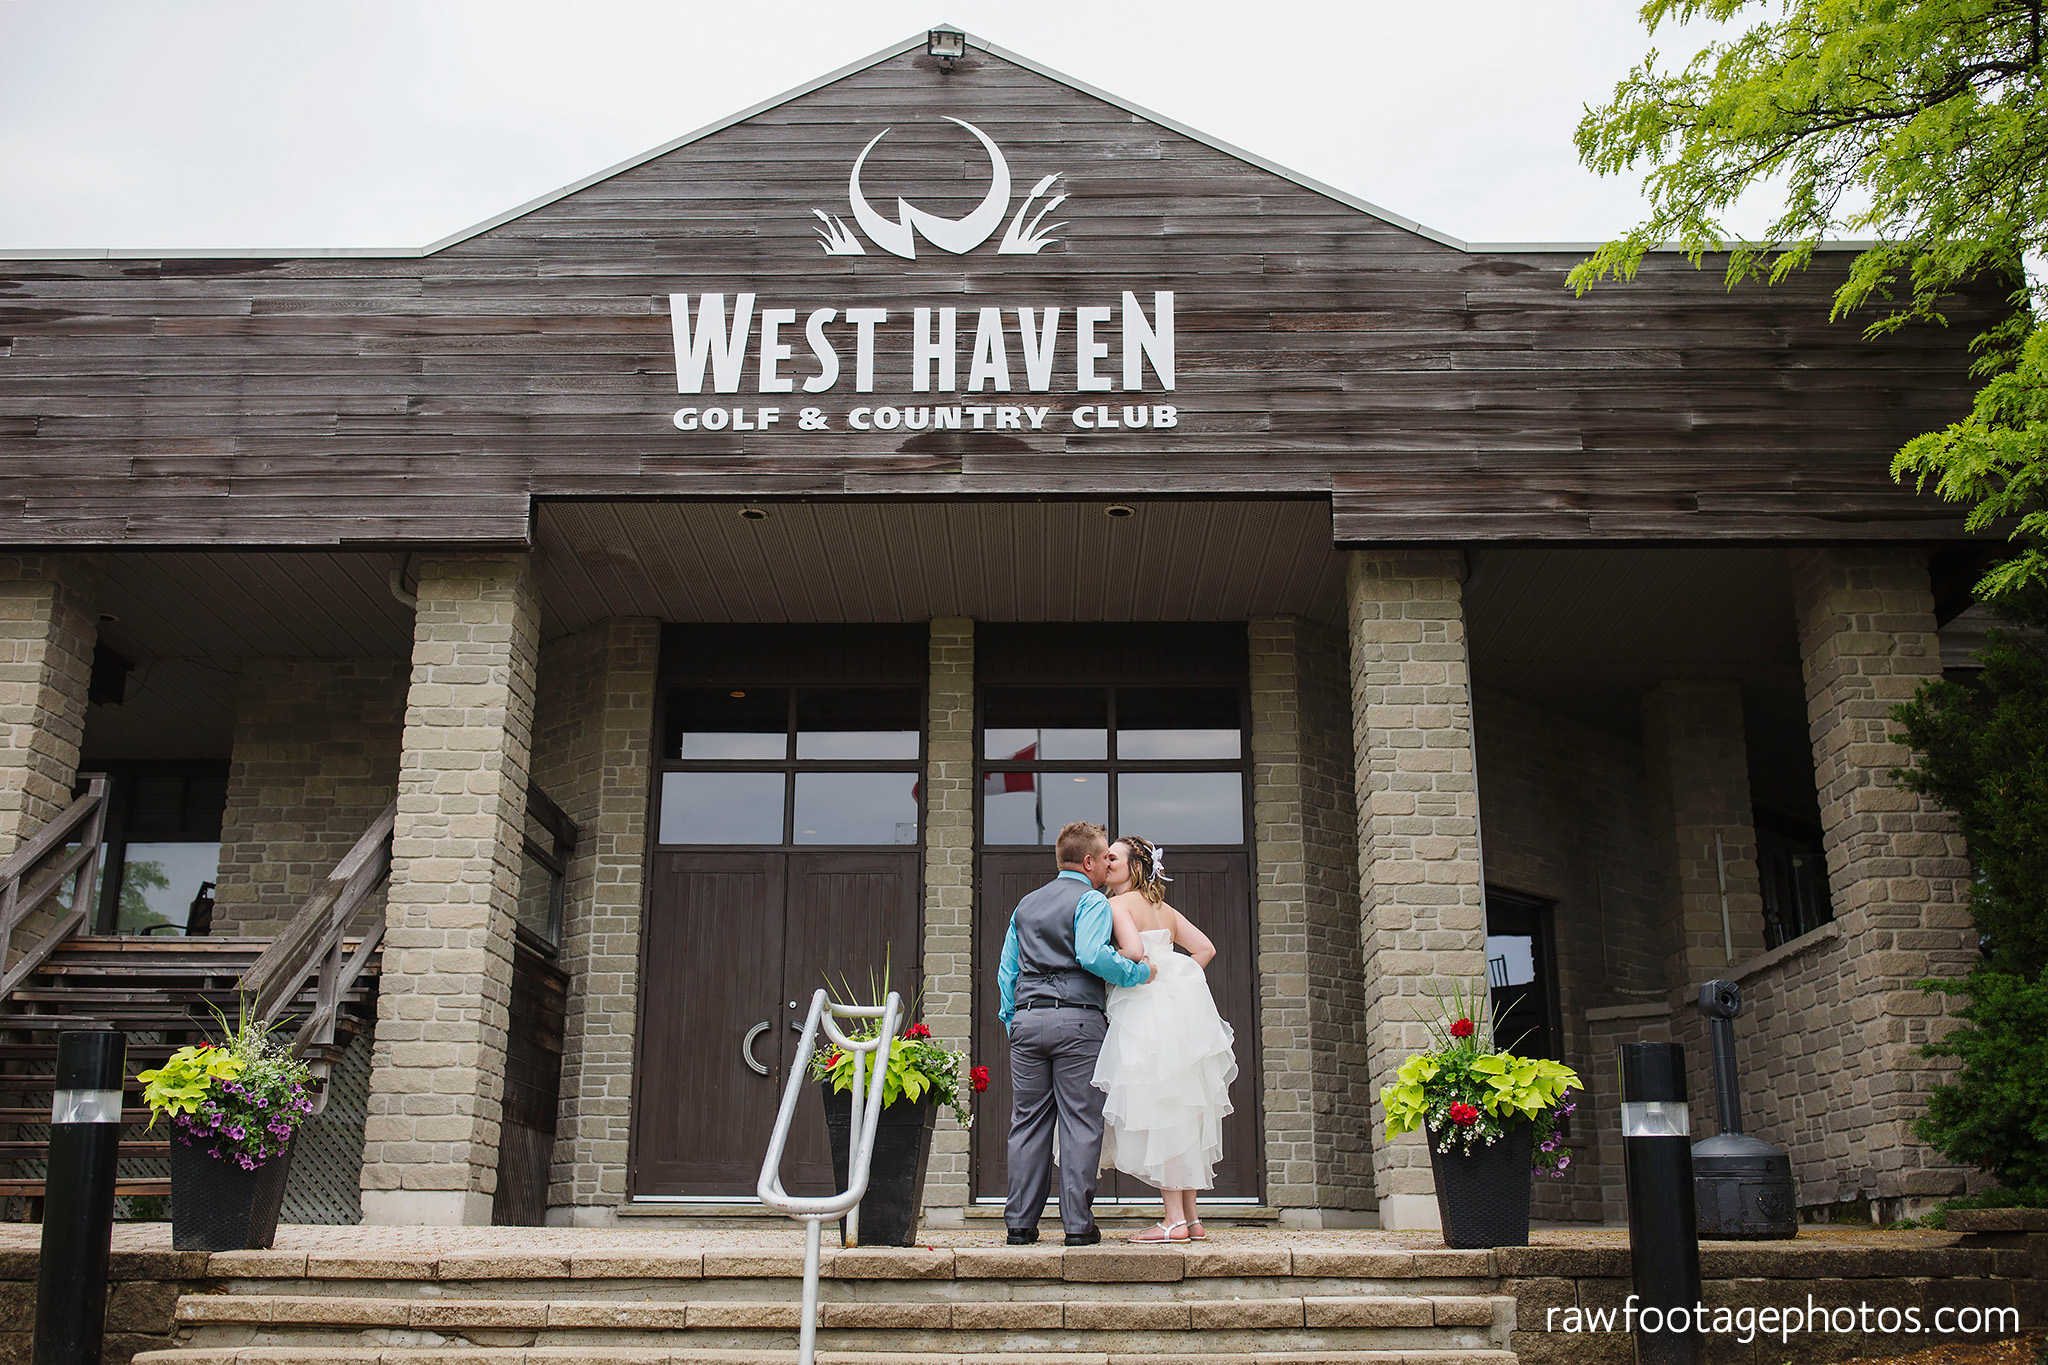 london_ontario_wedding_photographer-west_haven_golf_and_country_club-raw_footage_photography014.jpg